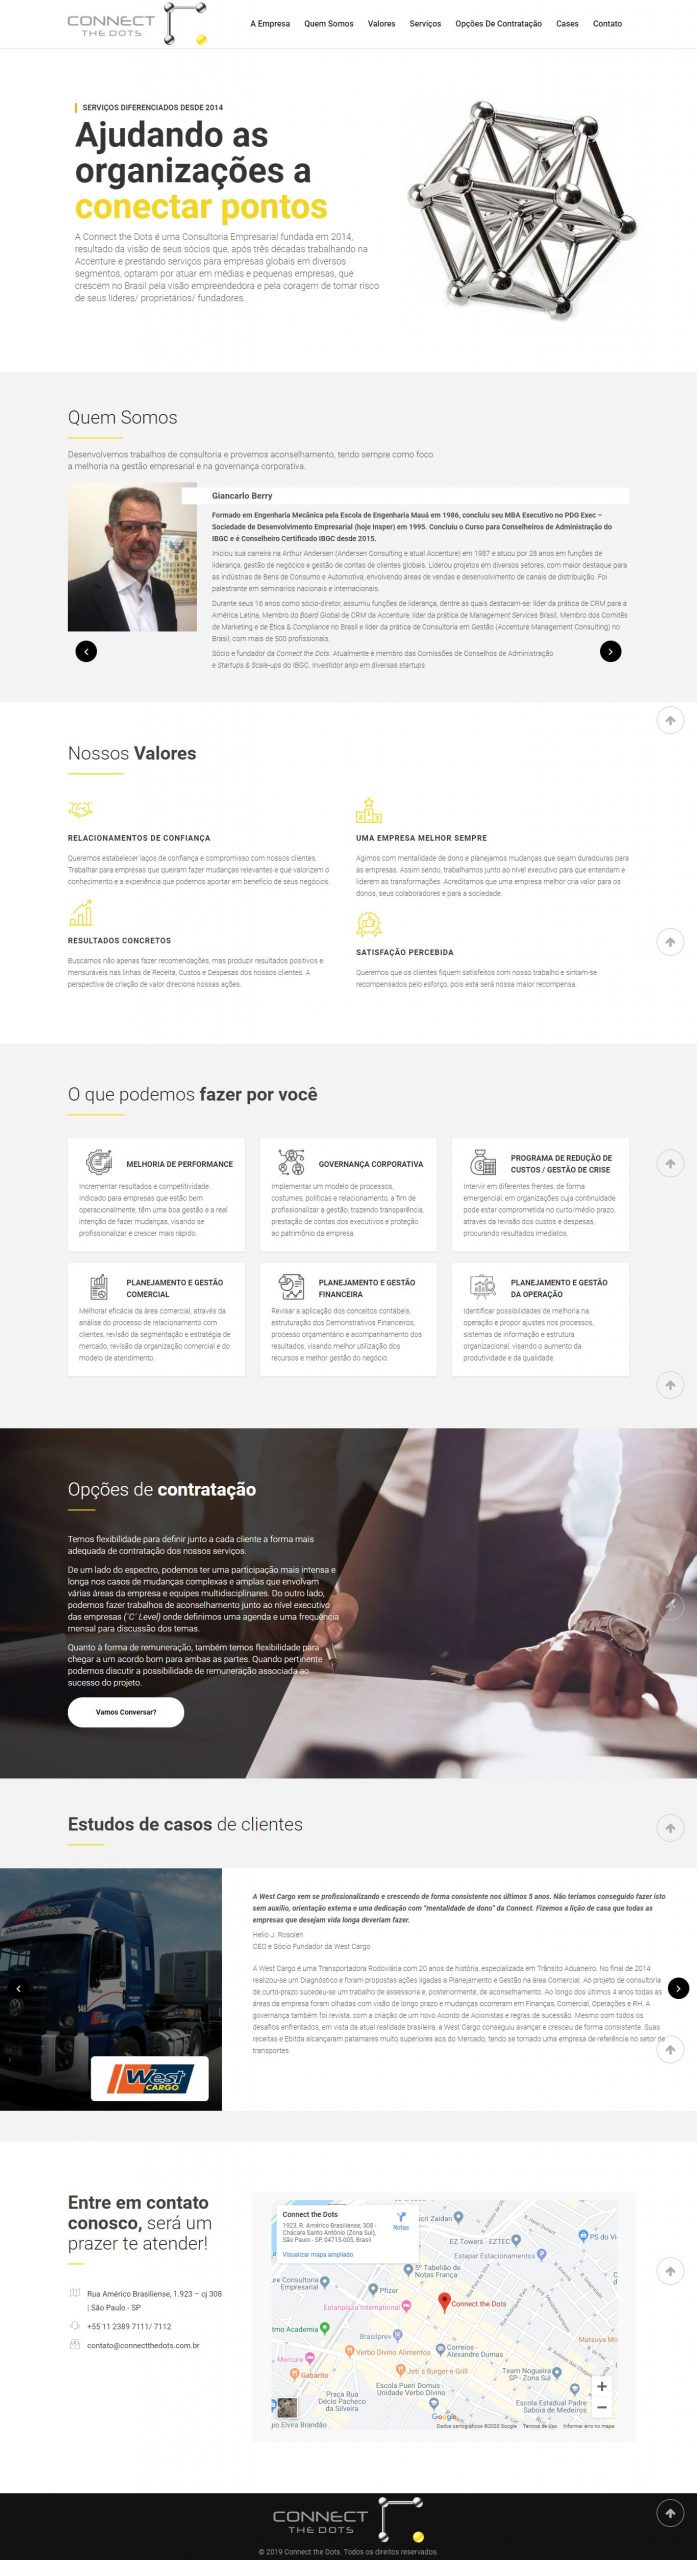 criacao site wordpress conect the dots completo